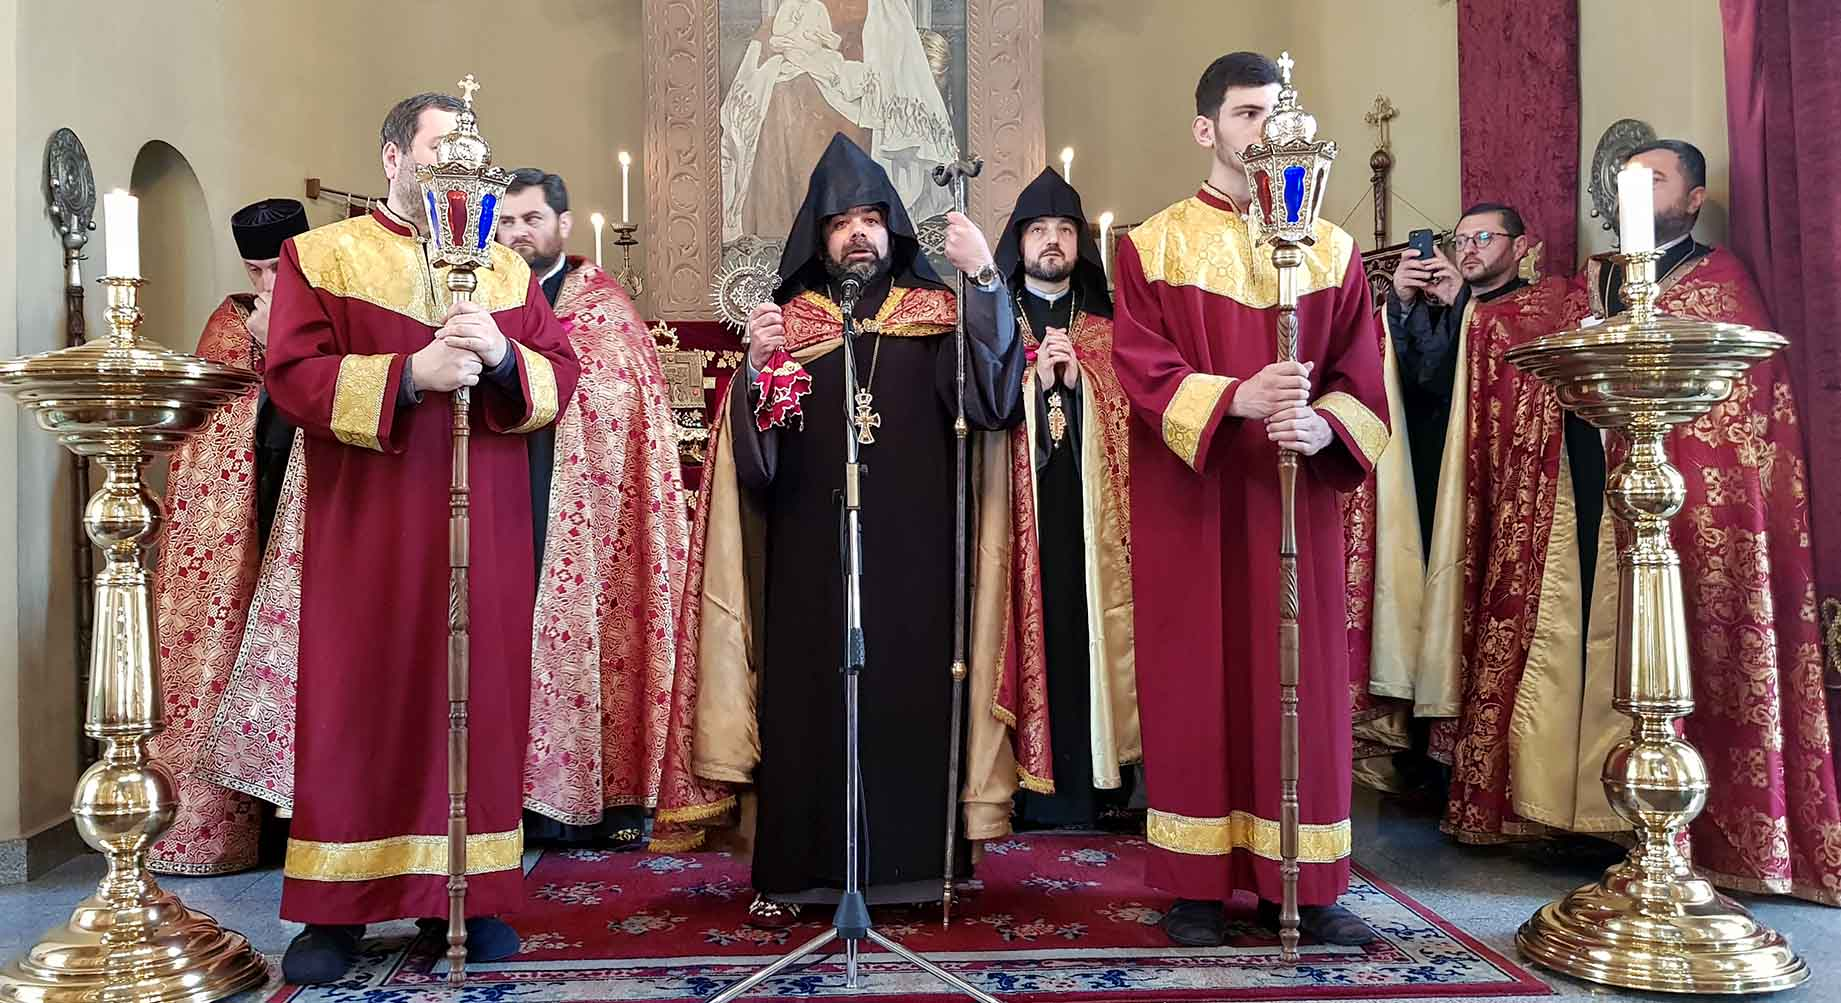 Intercessional Rite dedicated to Armenian Genocide was offered at Saint Etchmiadzin church in Tbilisi